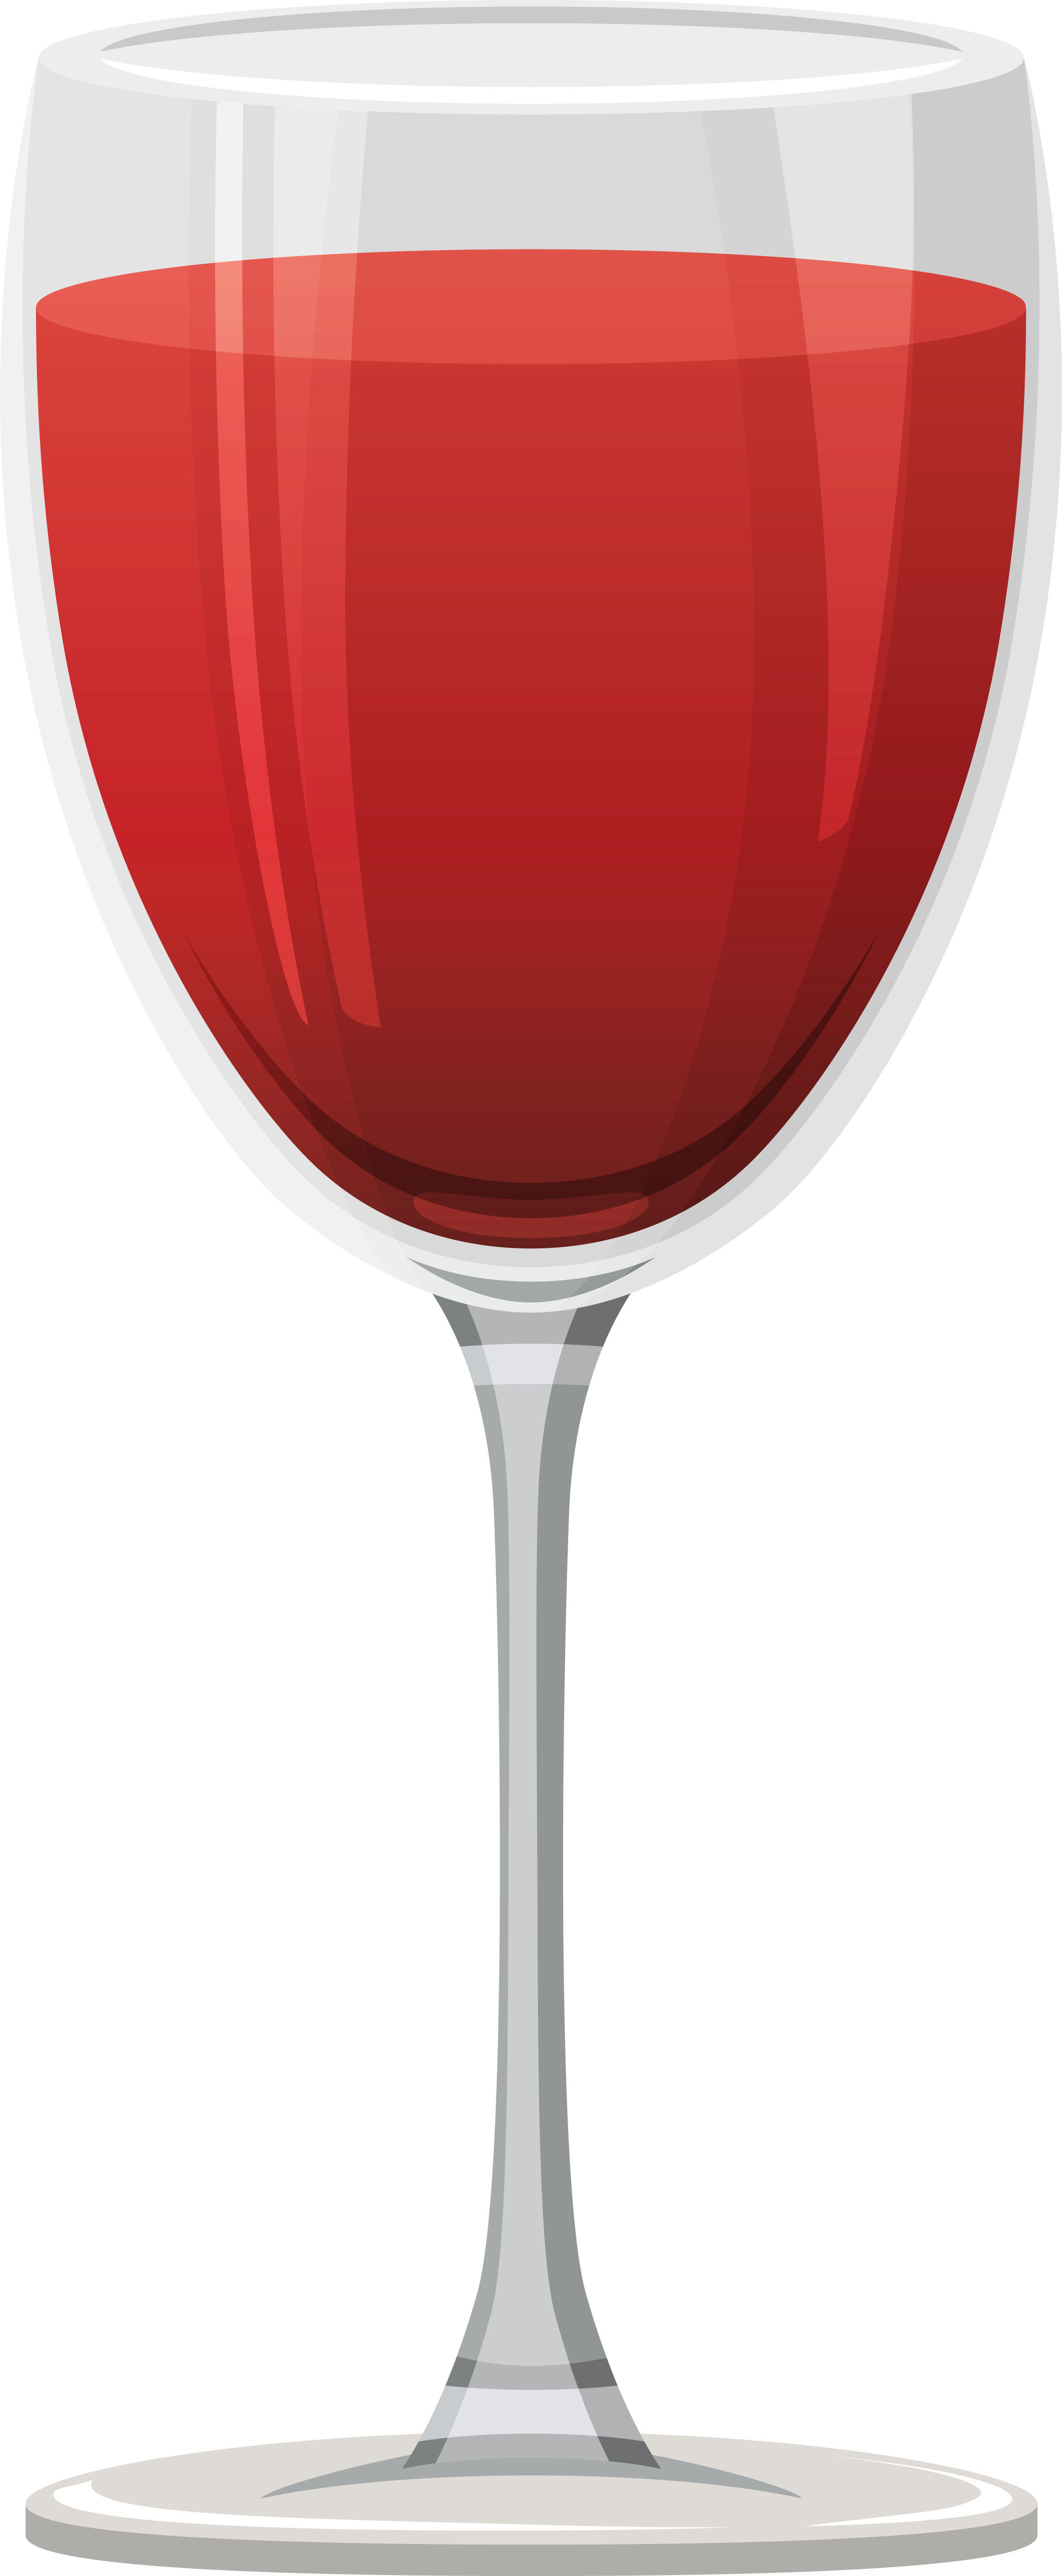 Download Wine Glass PNG Image for Free.